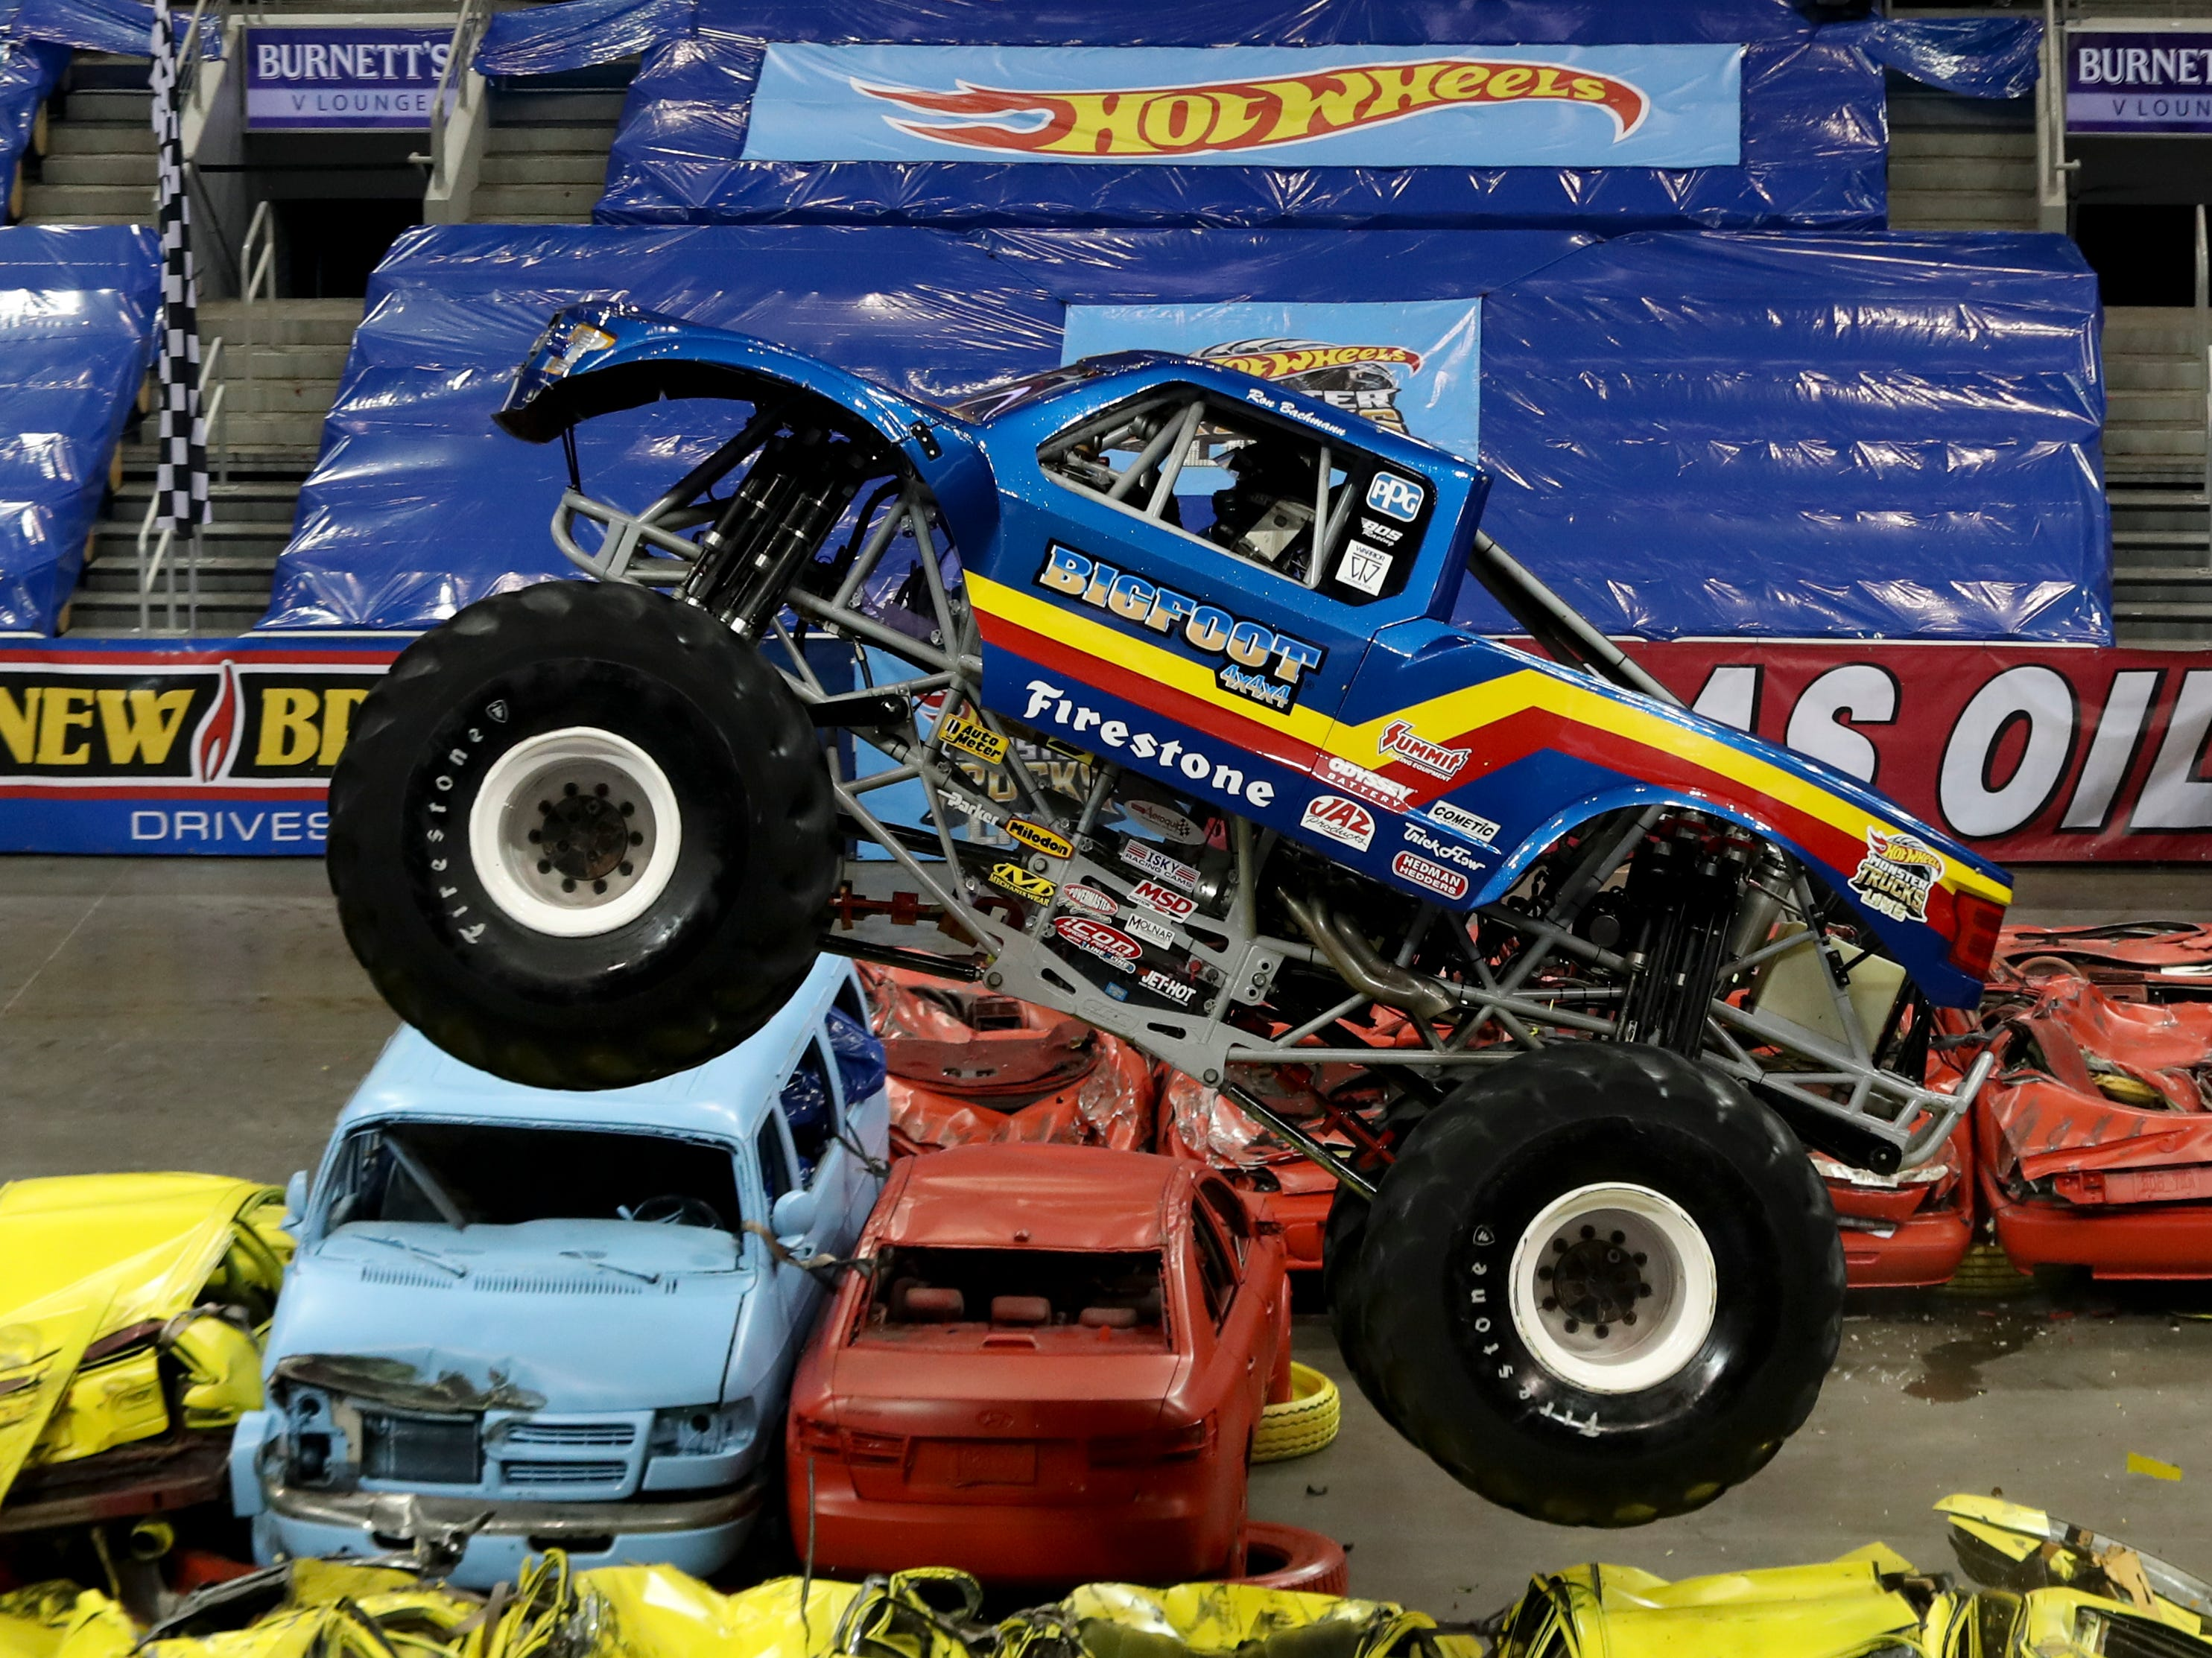 Darron Schnell, driver of Big Foot, entertains the crowd at the Hot Wheels Monster Trucks show at the KFC Yum Center on March 16.